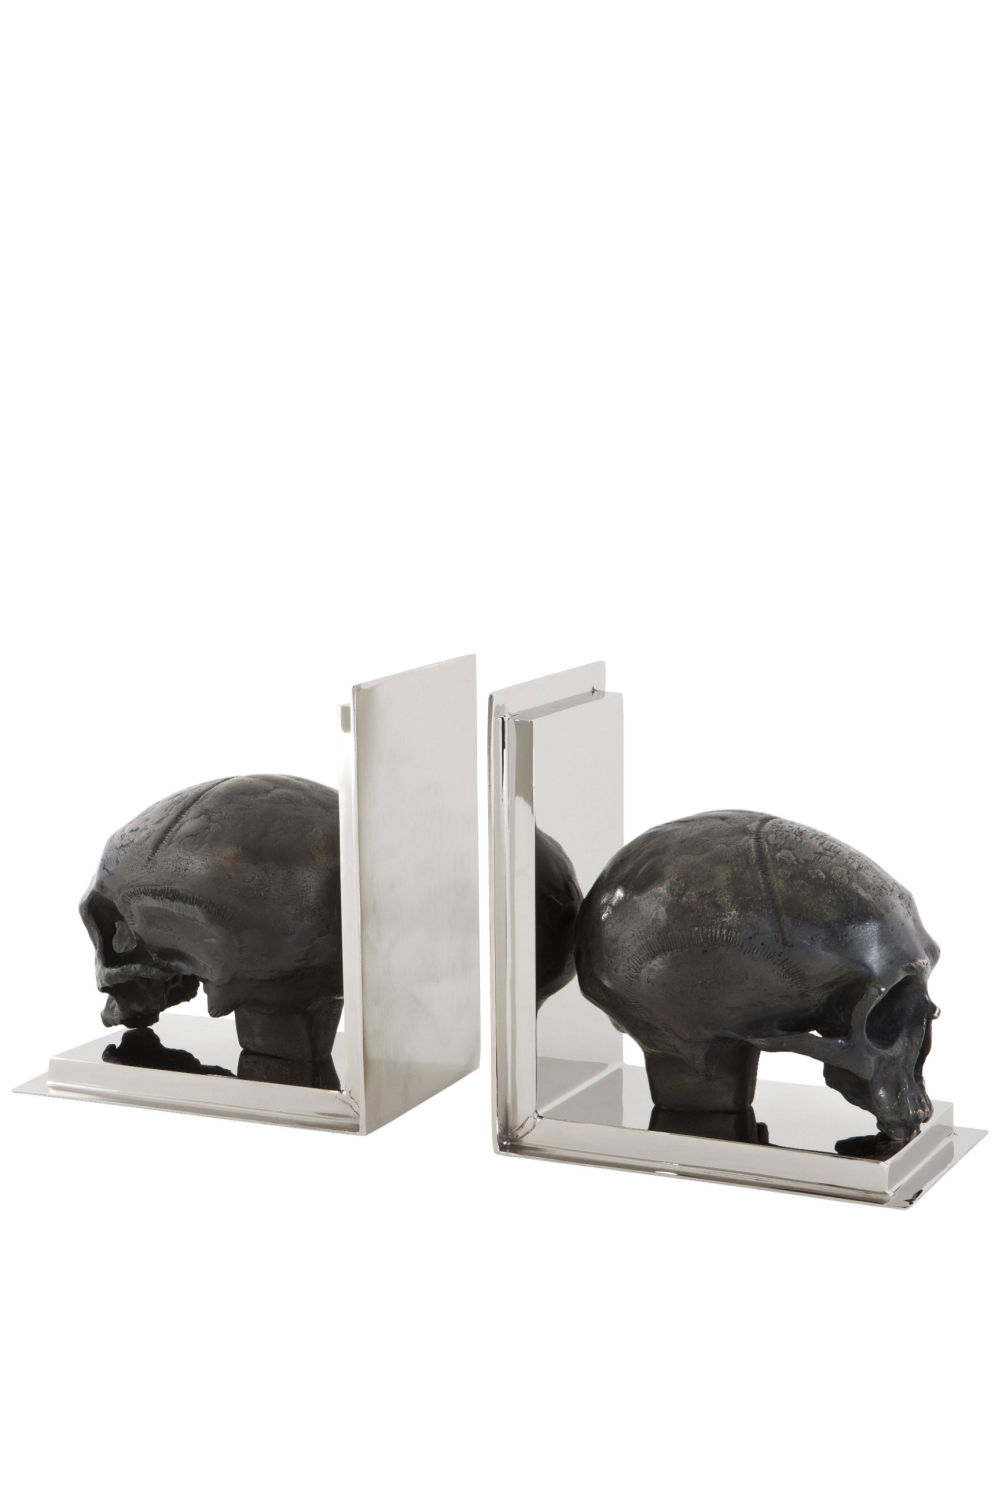 Skull Bookends set of 2 | Eichholtz | #1 Eichholtz Retailer